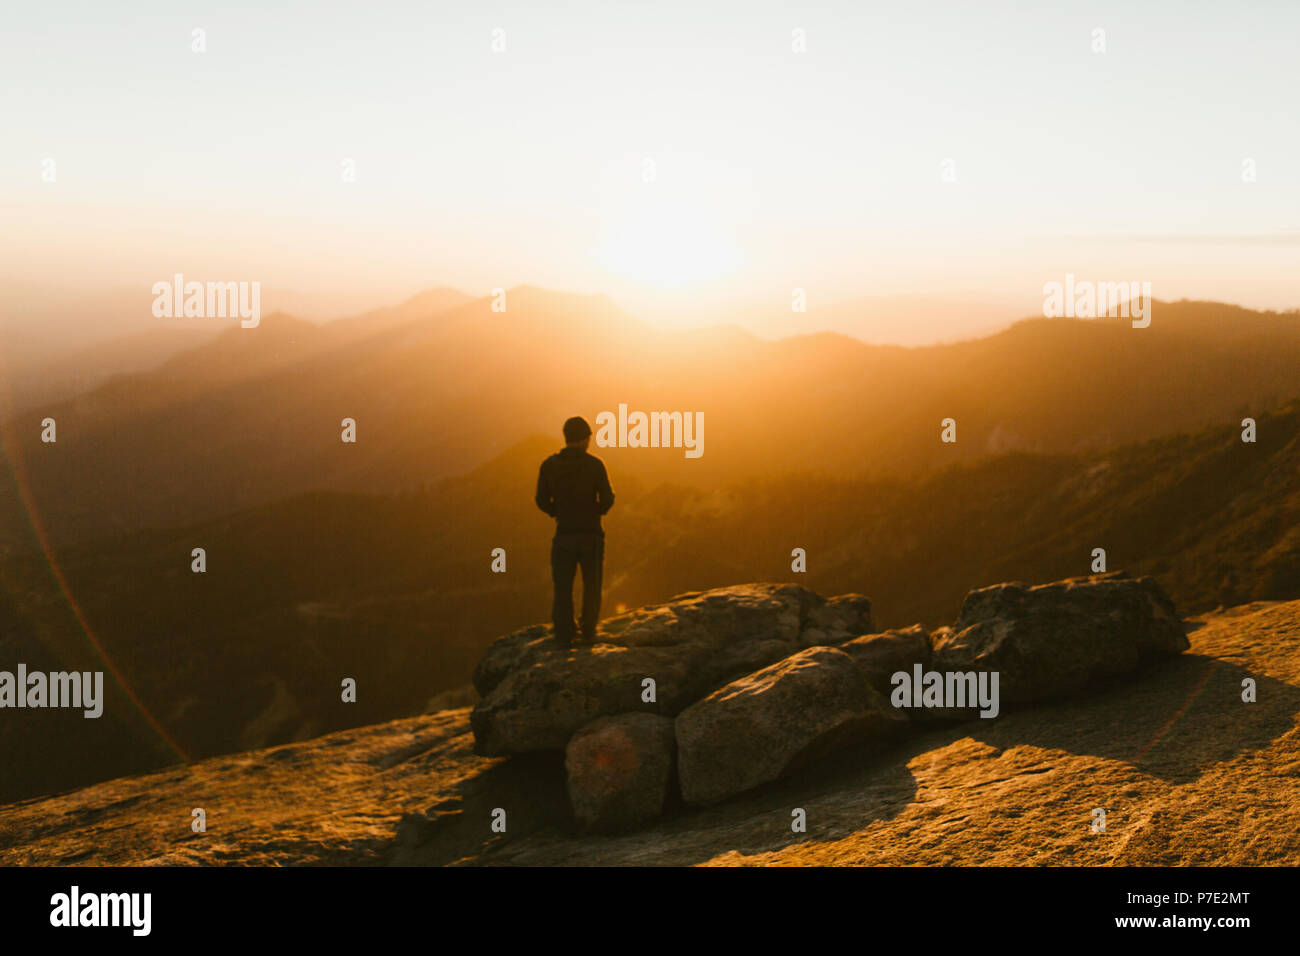 Man looking away at view of mountains at sunset, Sequoia National Park, California, USA - Stock Image